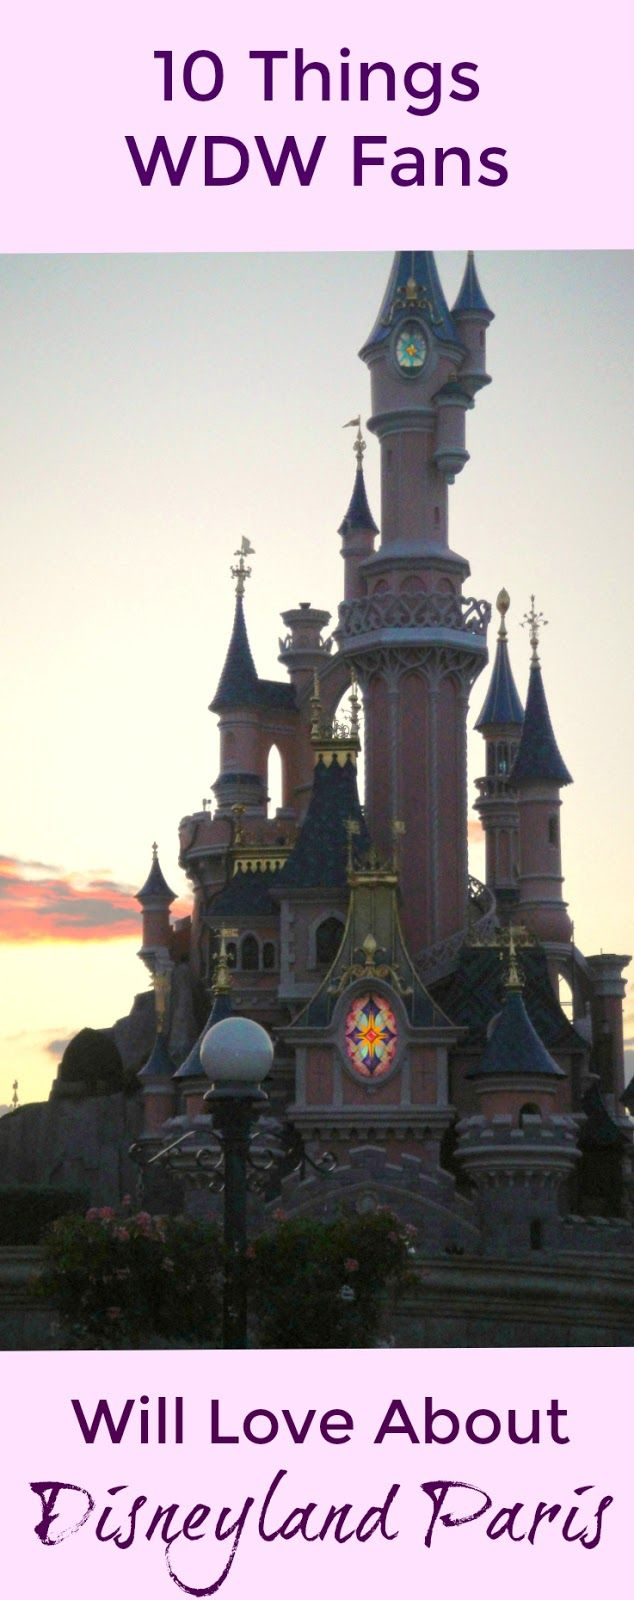 10 Things Walt Disney World Fans Will Love About Disneyland Paris | Post 50 RX